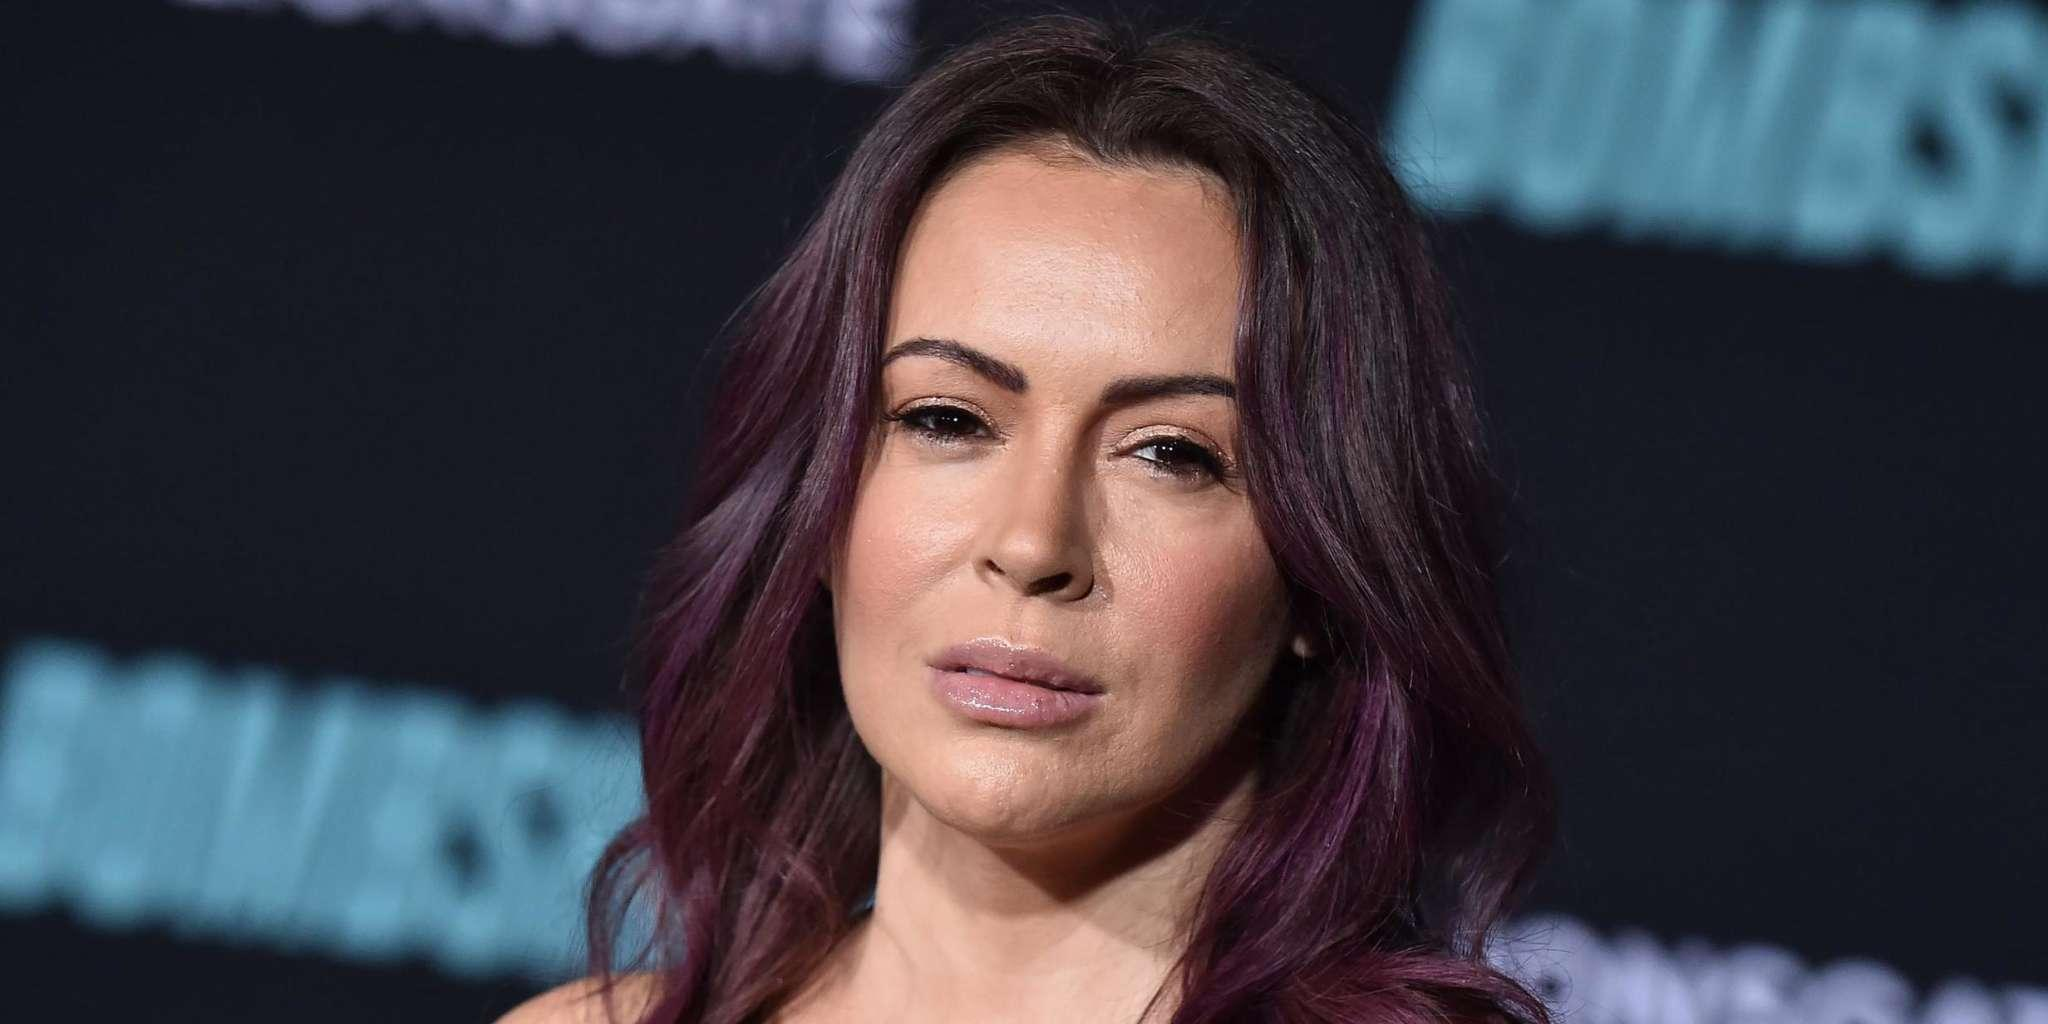 Alyssa Milano Reveals COVID-19 Battle And How Intense The Virus Is